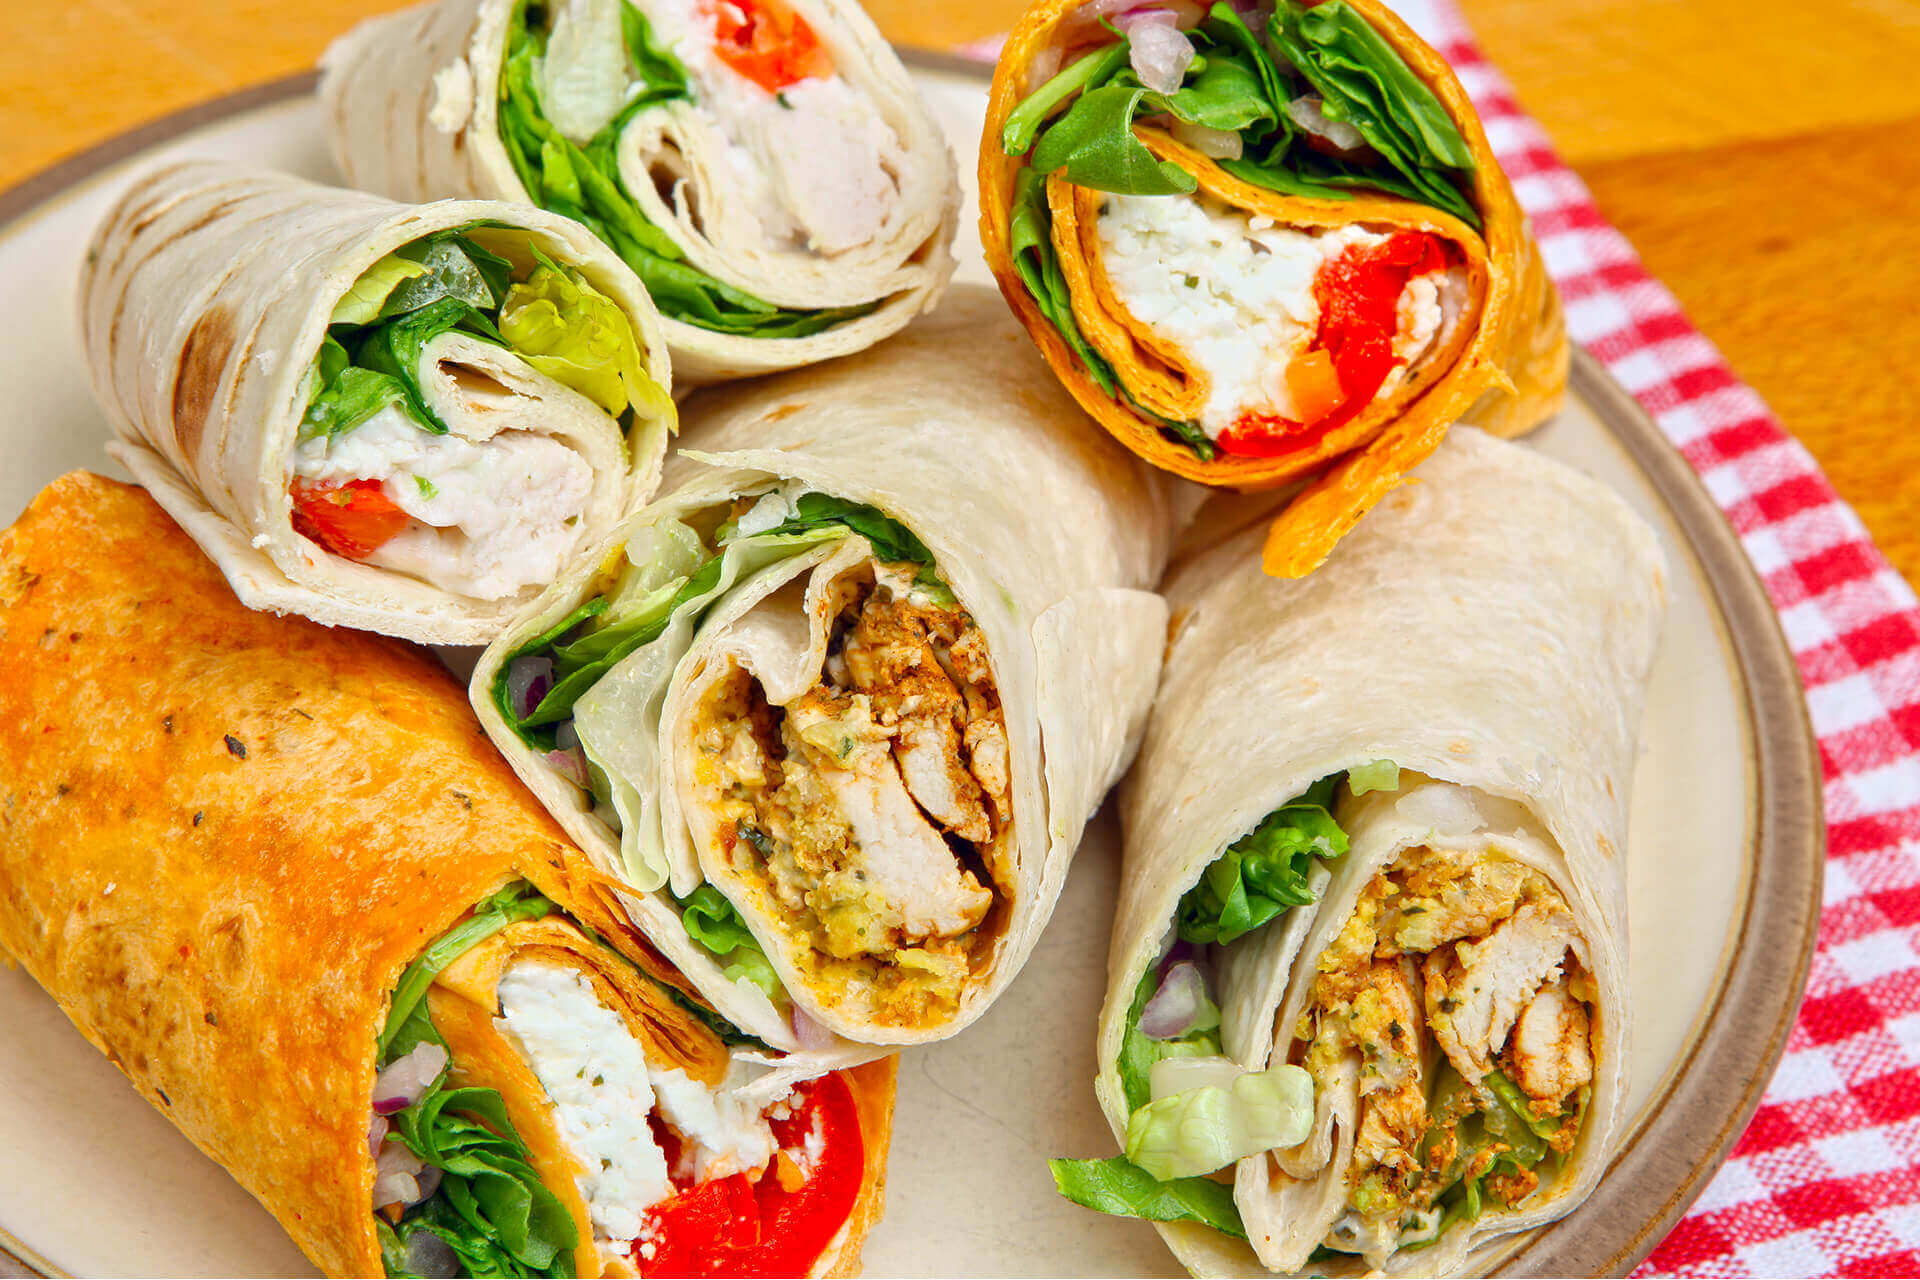 We provide lunch and dinner catering services in Regina and surrounding areas.